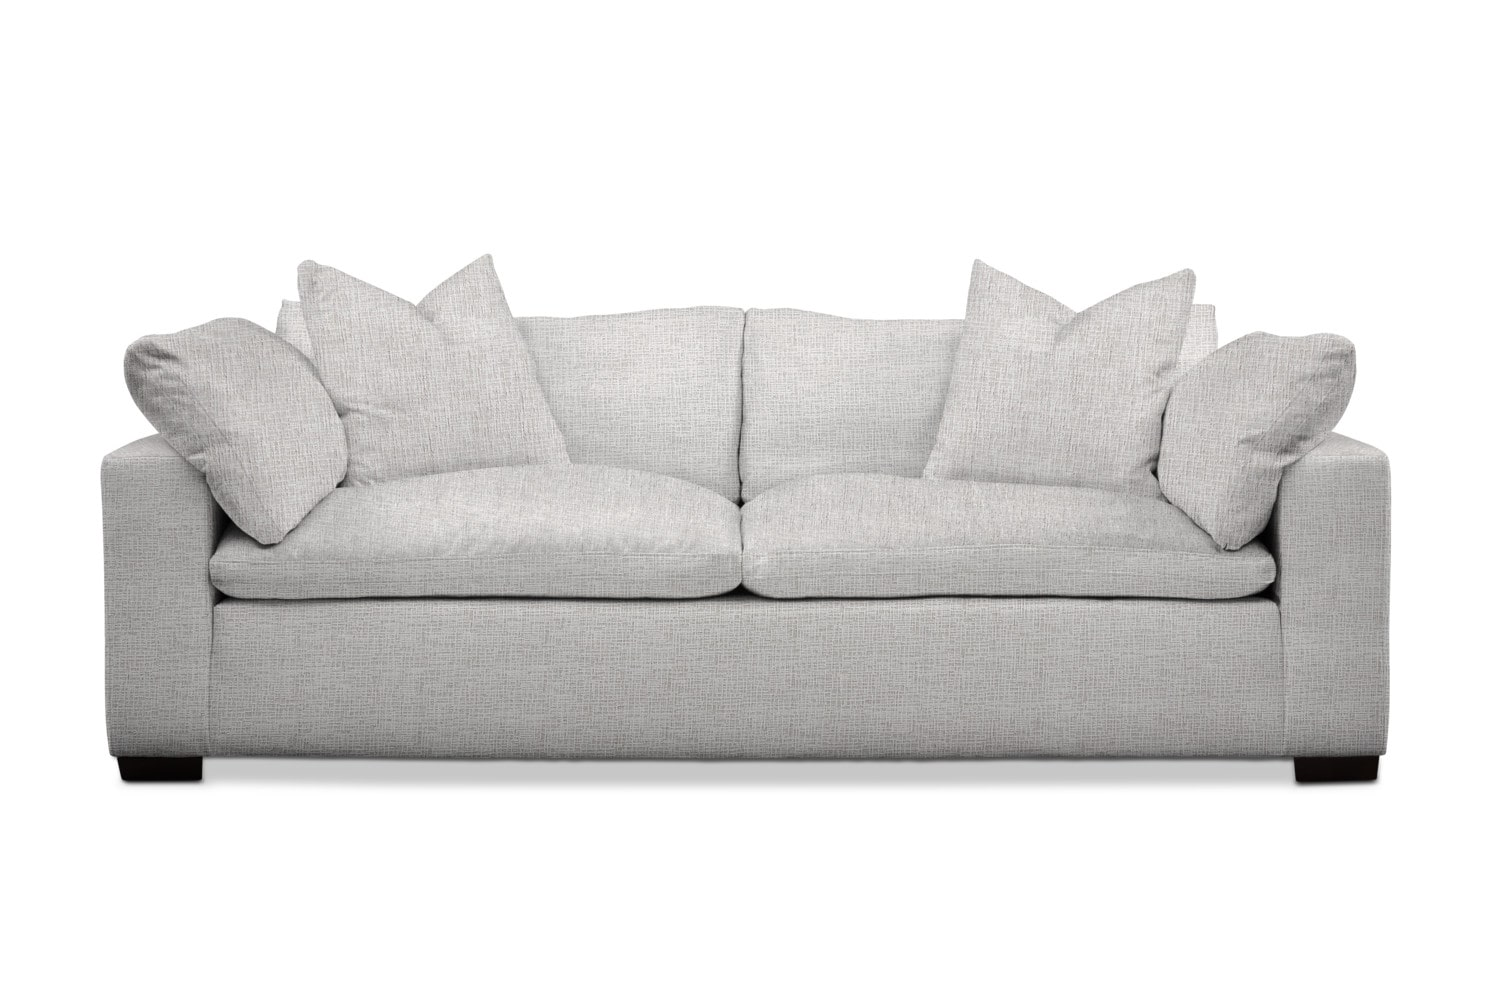 cheap sofa sets under 400 baker sectional sofas couches living room seating value city furniture tap to change plush